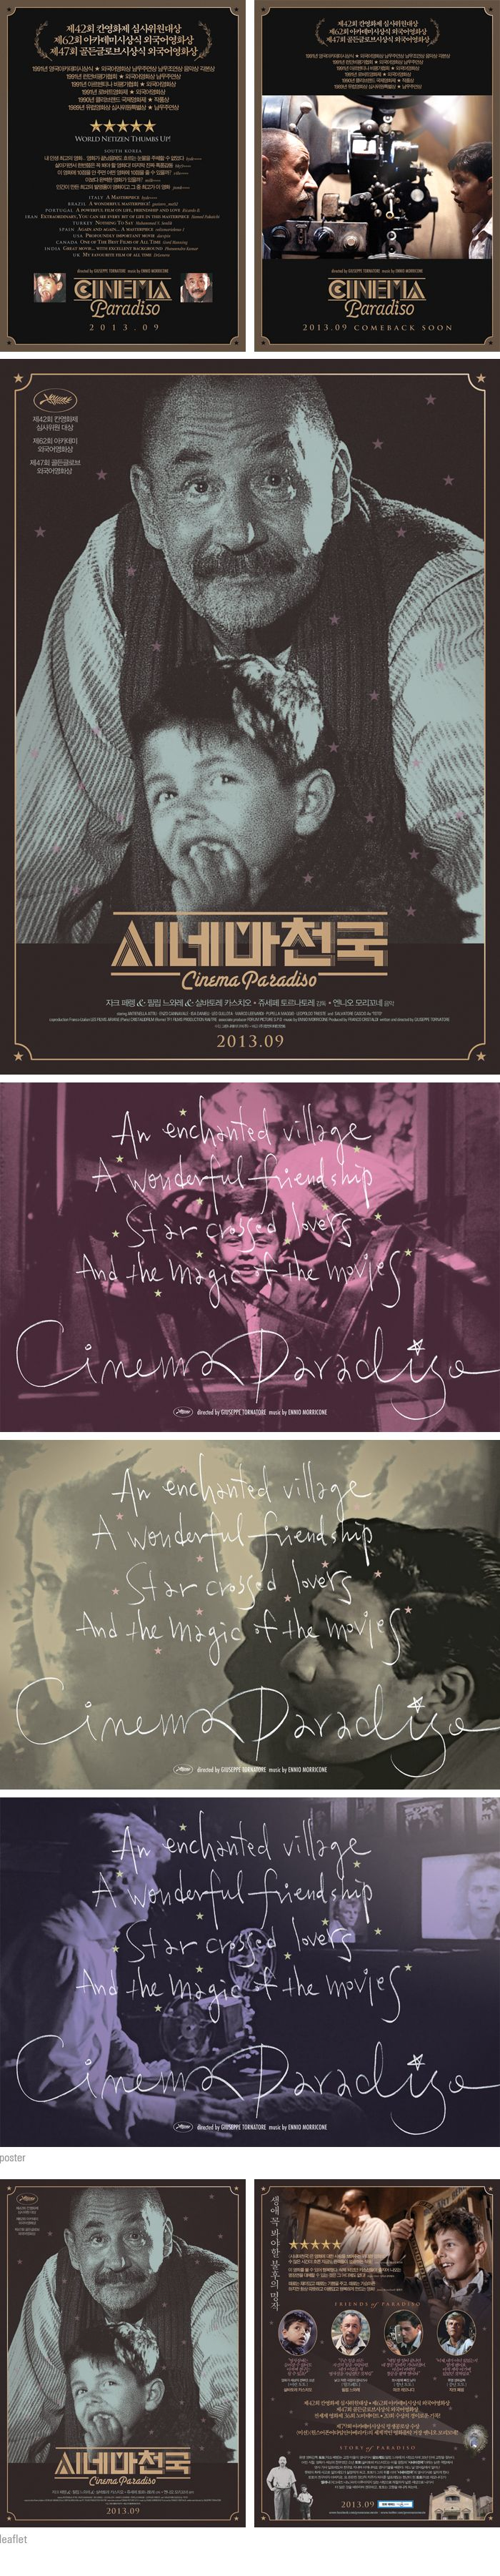 Film :: alternative graphics - PROPAGANDA :: - 시네마천국 Cinema Paradiso